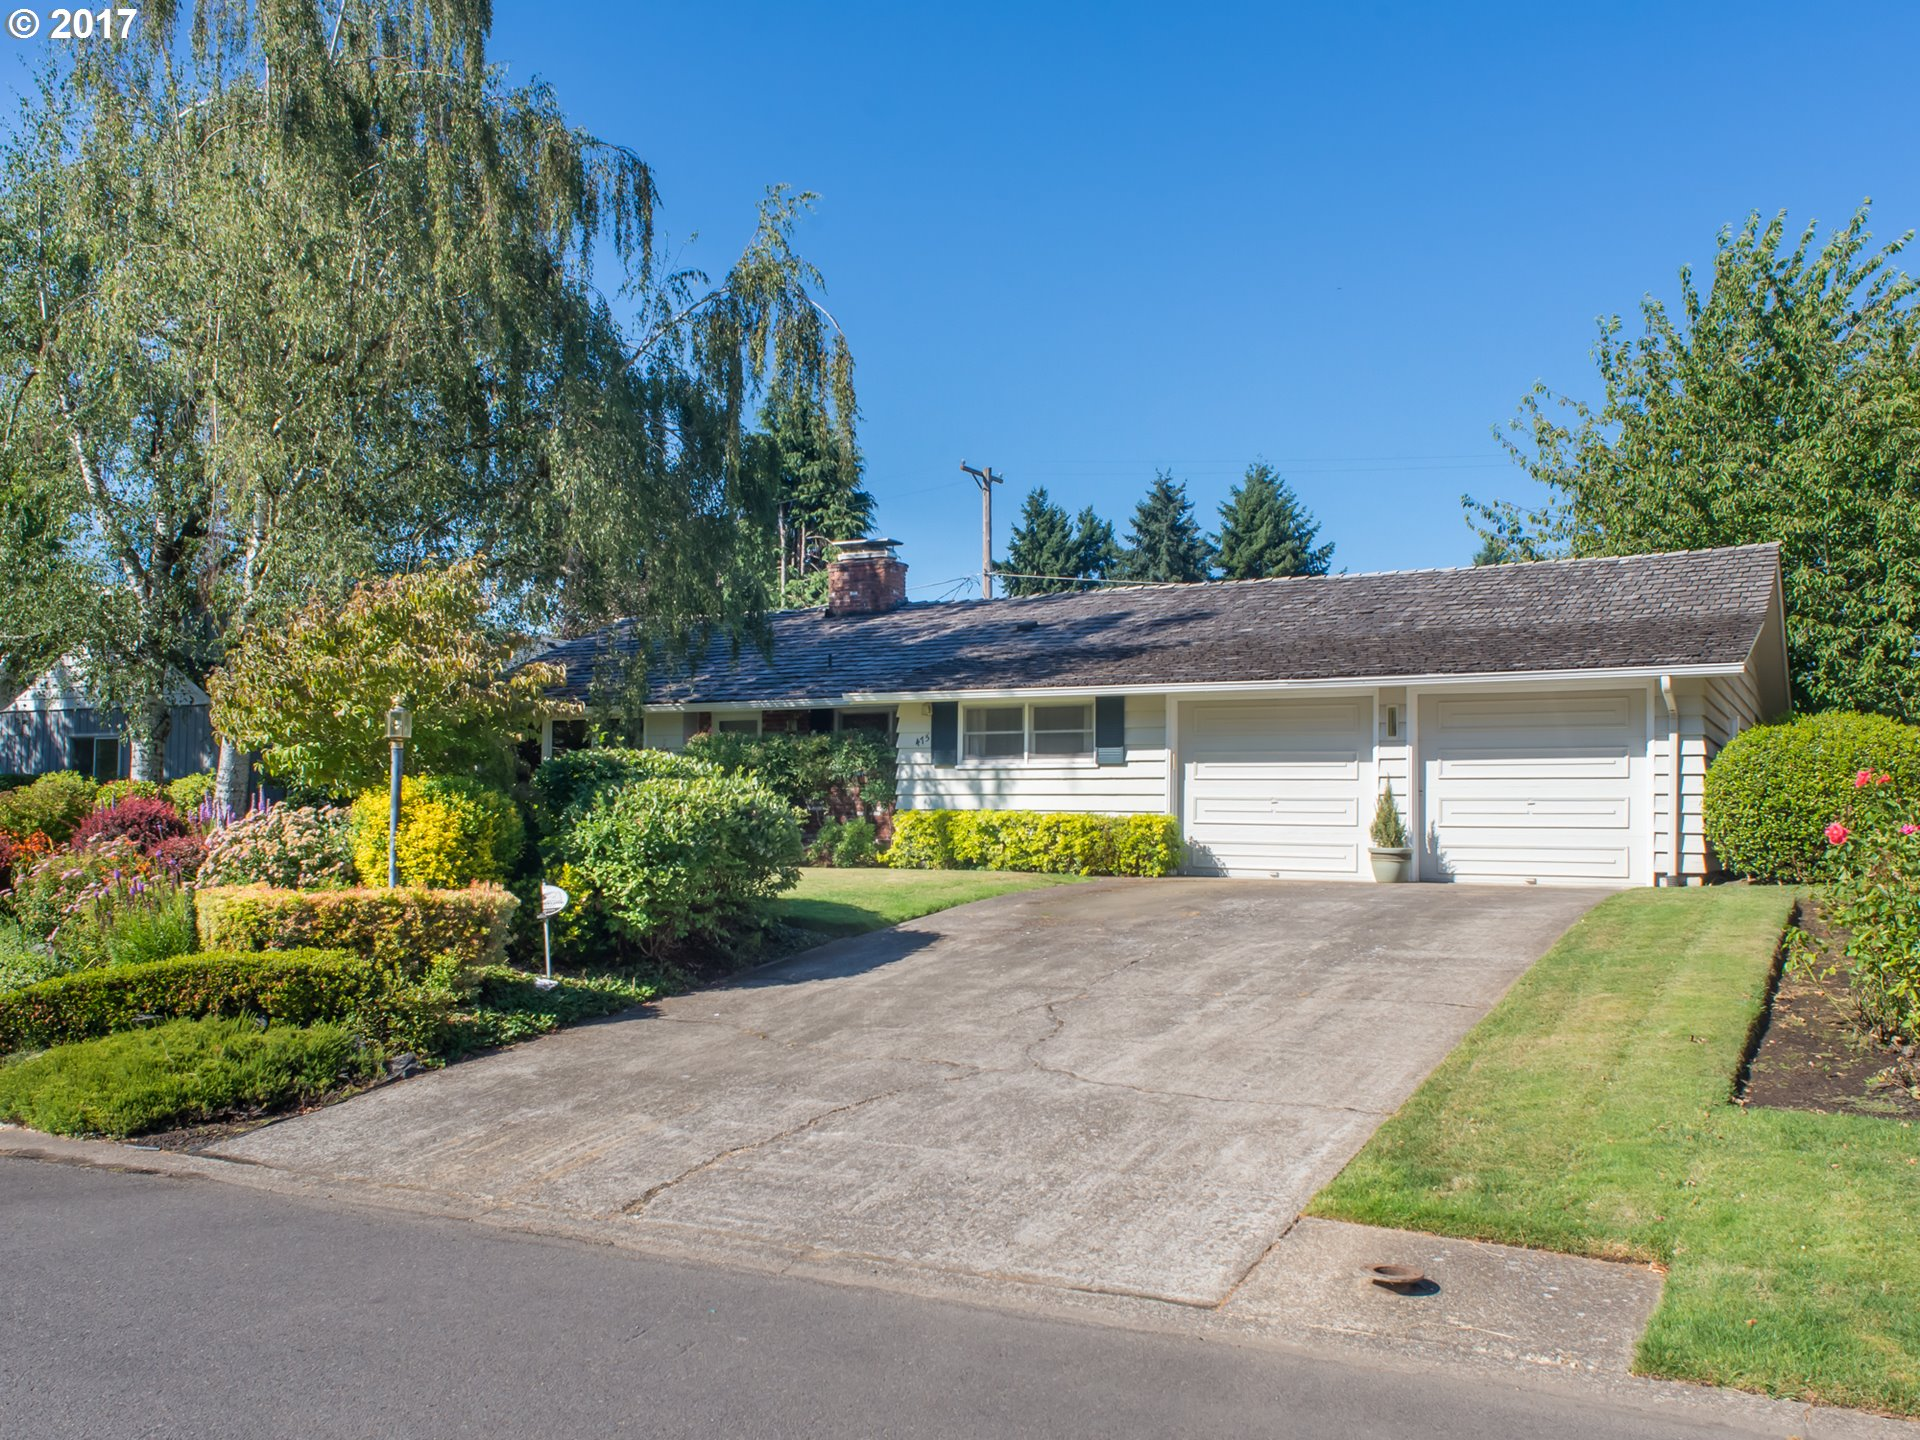 475 PINTO WAY, Eugene, OR 97401